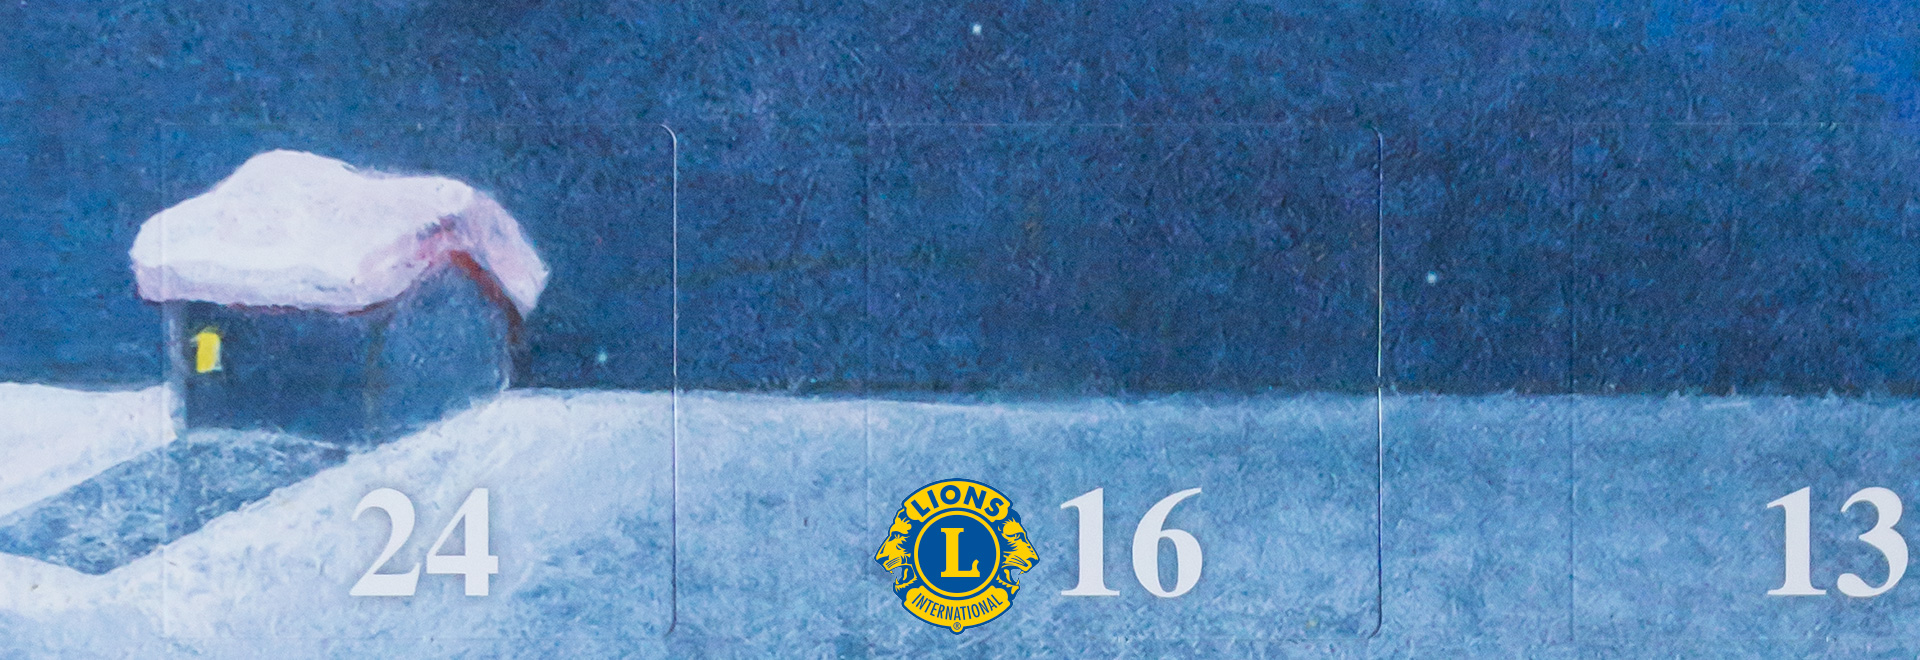 Lions Club Adventskalender 2018